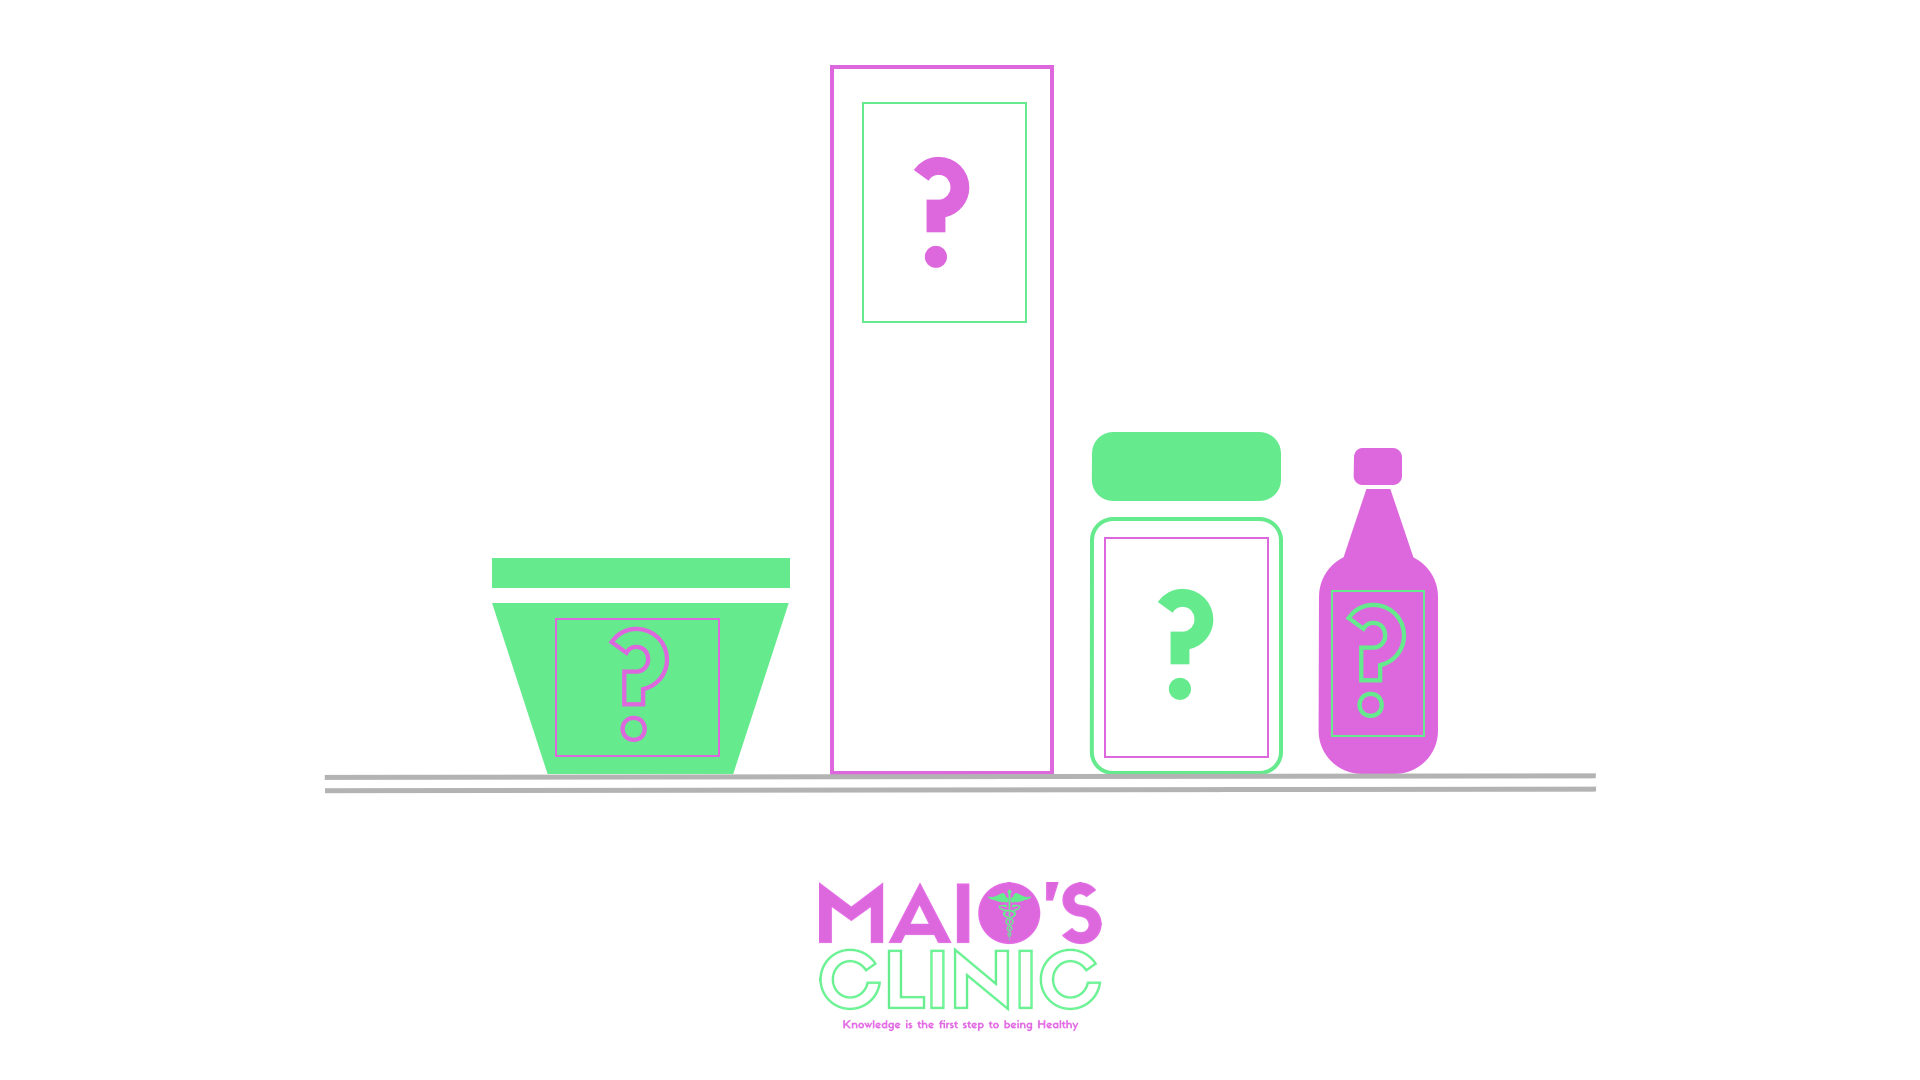 Maio's Clinic: Food Labels – What's On Your Table?